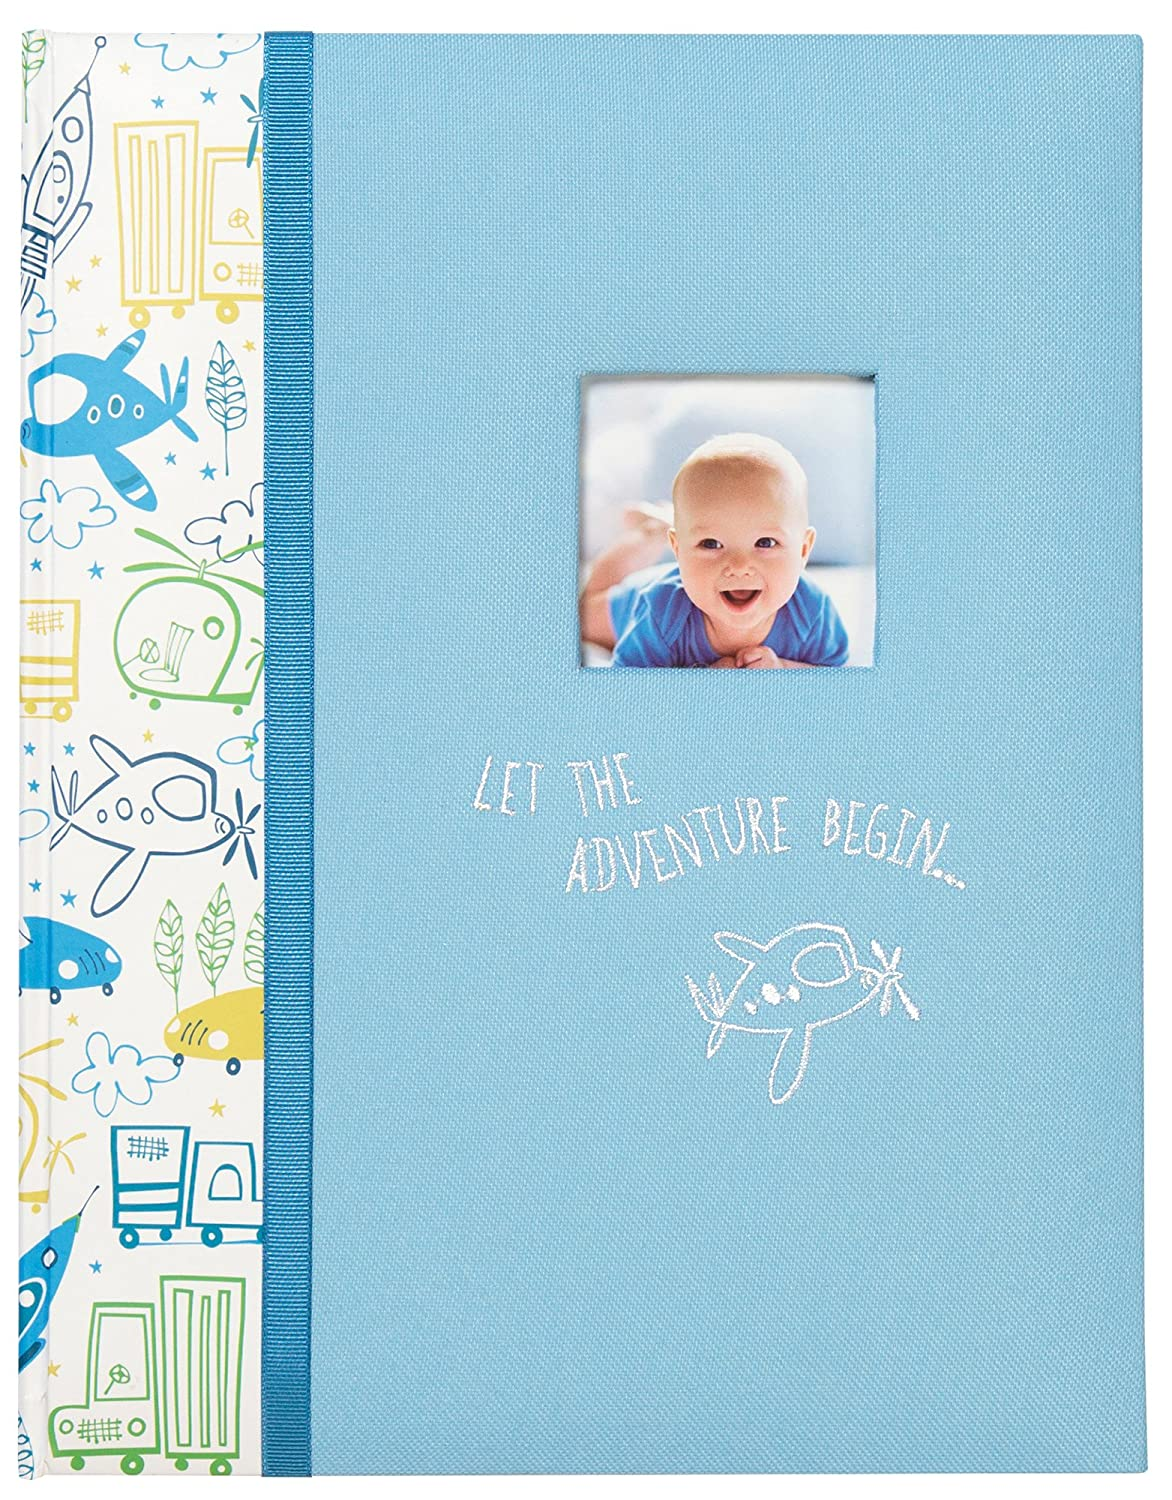 C.R. Gibson Grandmas'Let the Adventure Begin Brag Book for Babies and Newborns, 20 Pages, 7.25 W x 4.5 H 7.25 W x 4.5 H C.R. Gibson - Baby BP73-18282